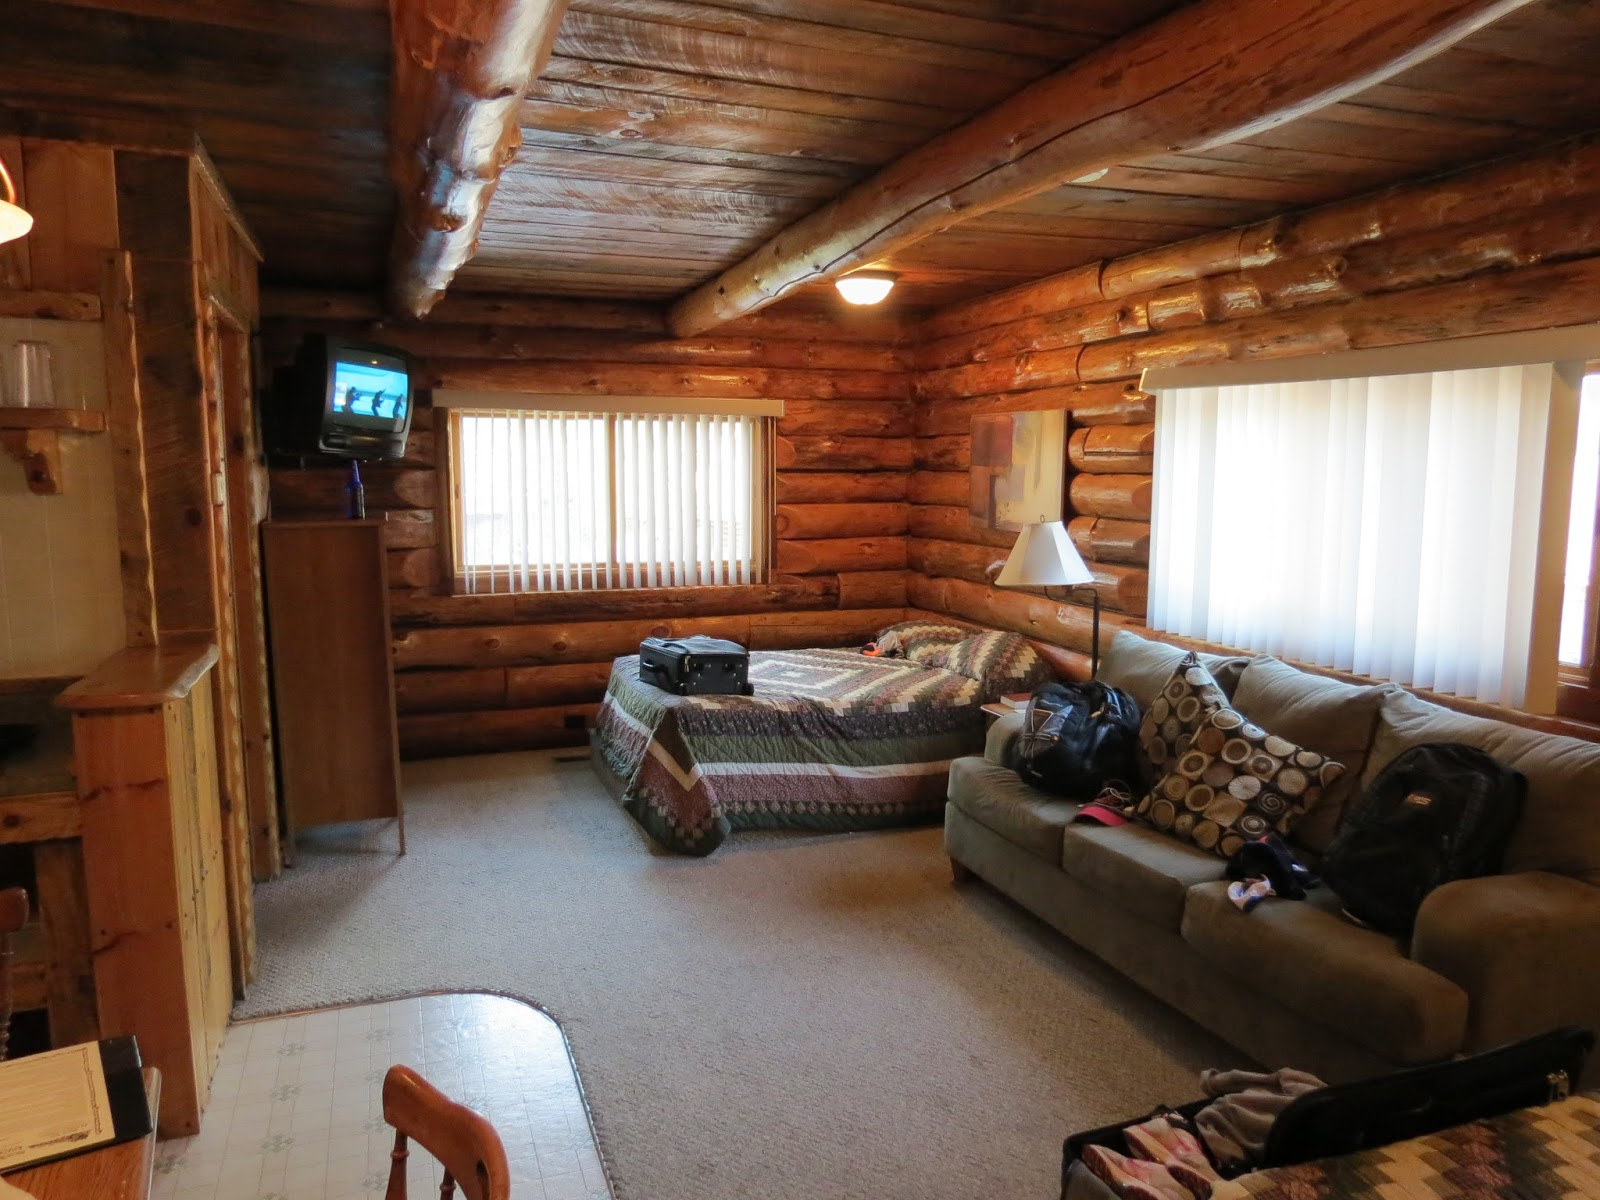 our cabins dells fun it such wisco michigan and katie illinois we wisconsin in with trifecta little forest a camped the next place andy this cabin jenn midwest is destination sherwood at was dellscamp